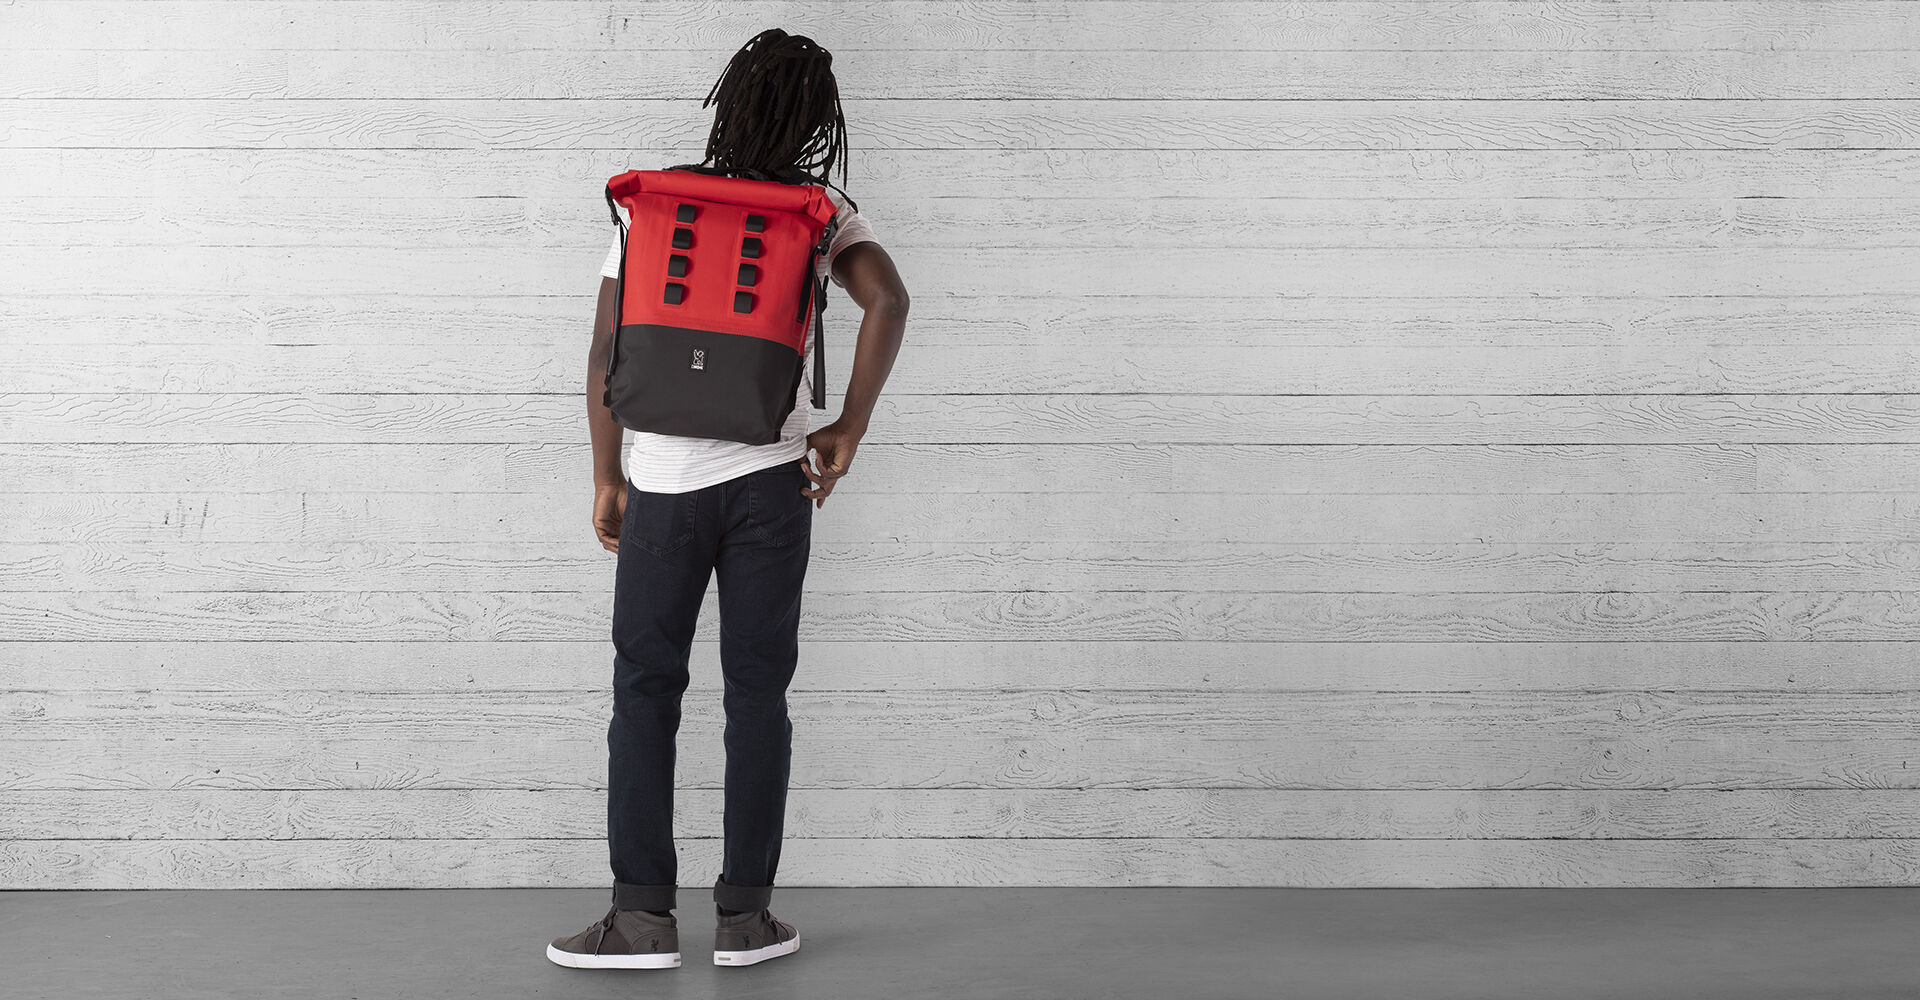 Urban Ex Rolltop 28L Backpack in Red / Black - wide view.